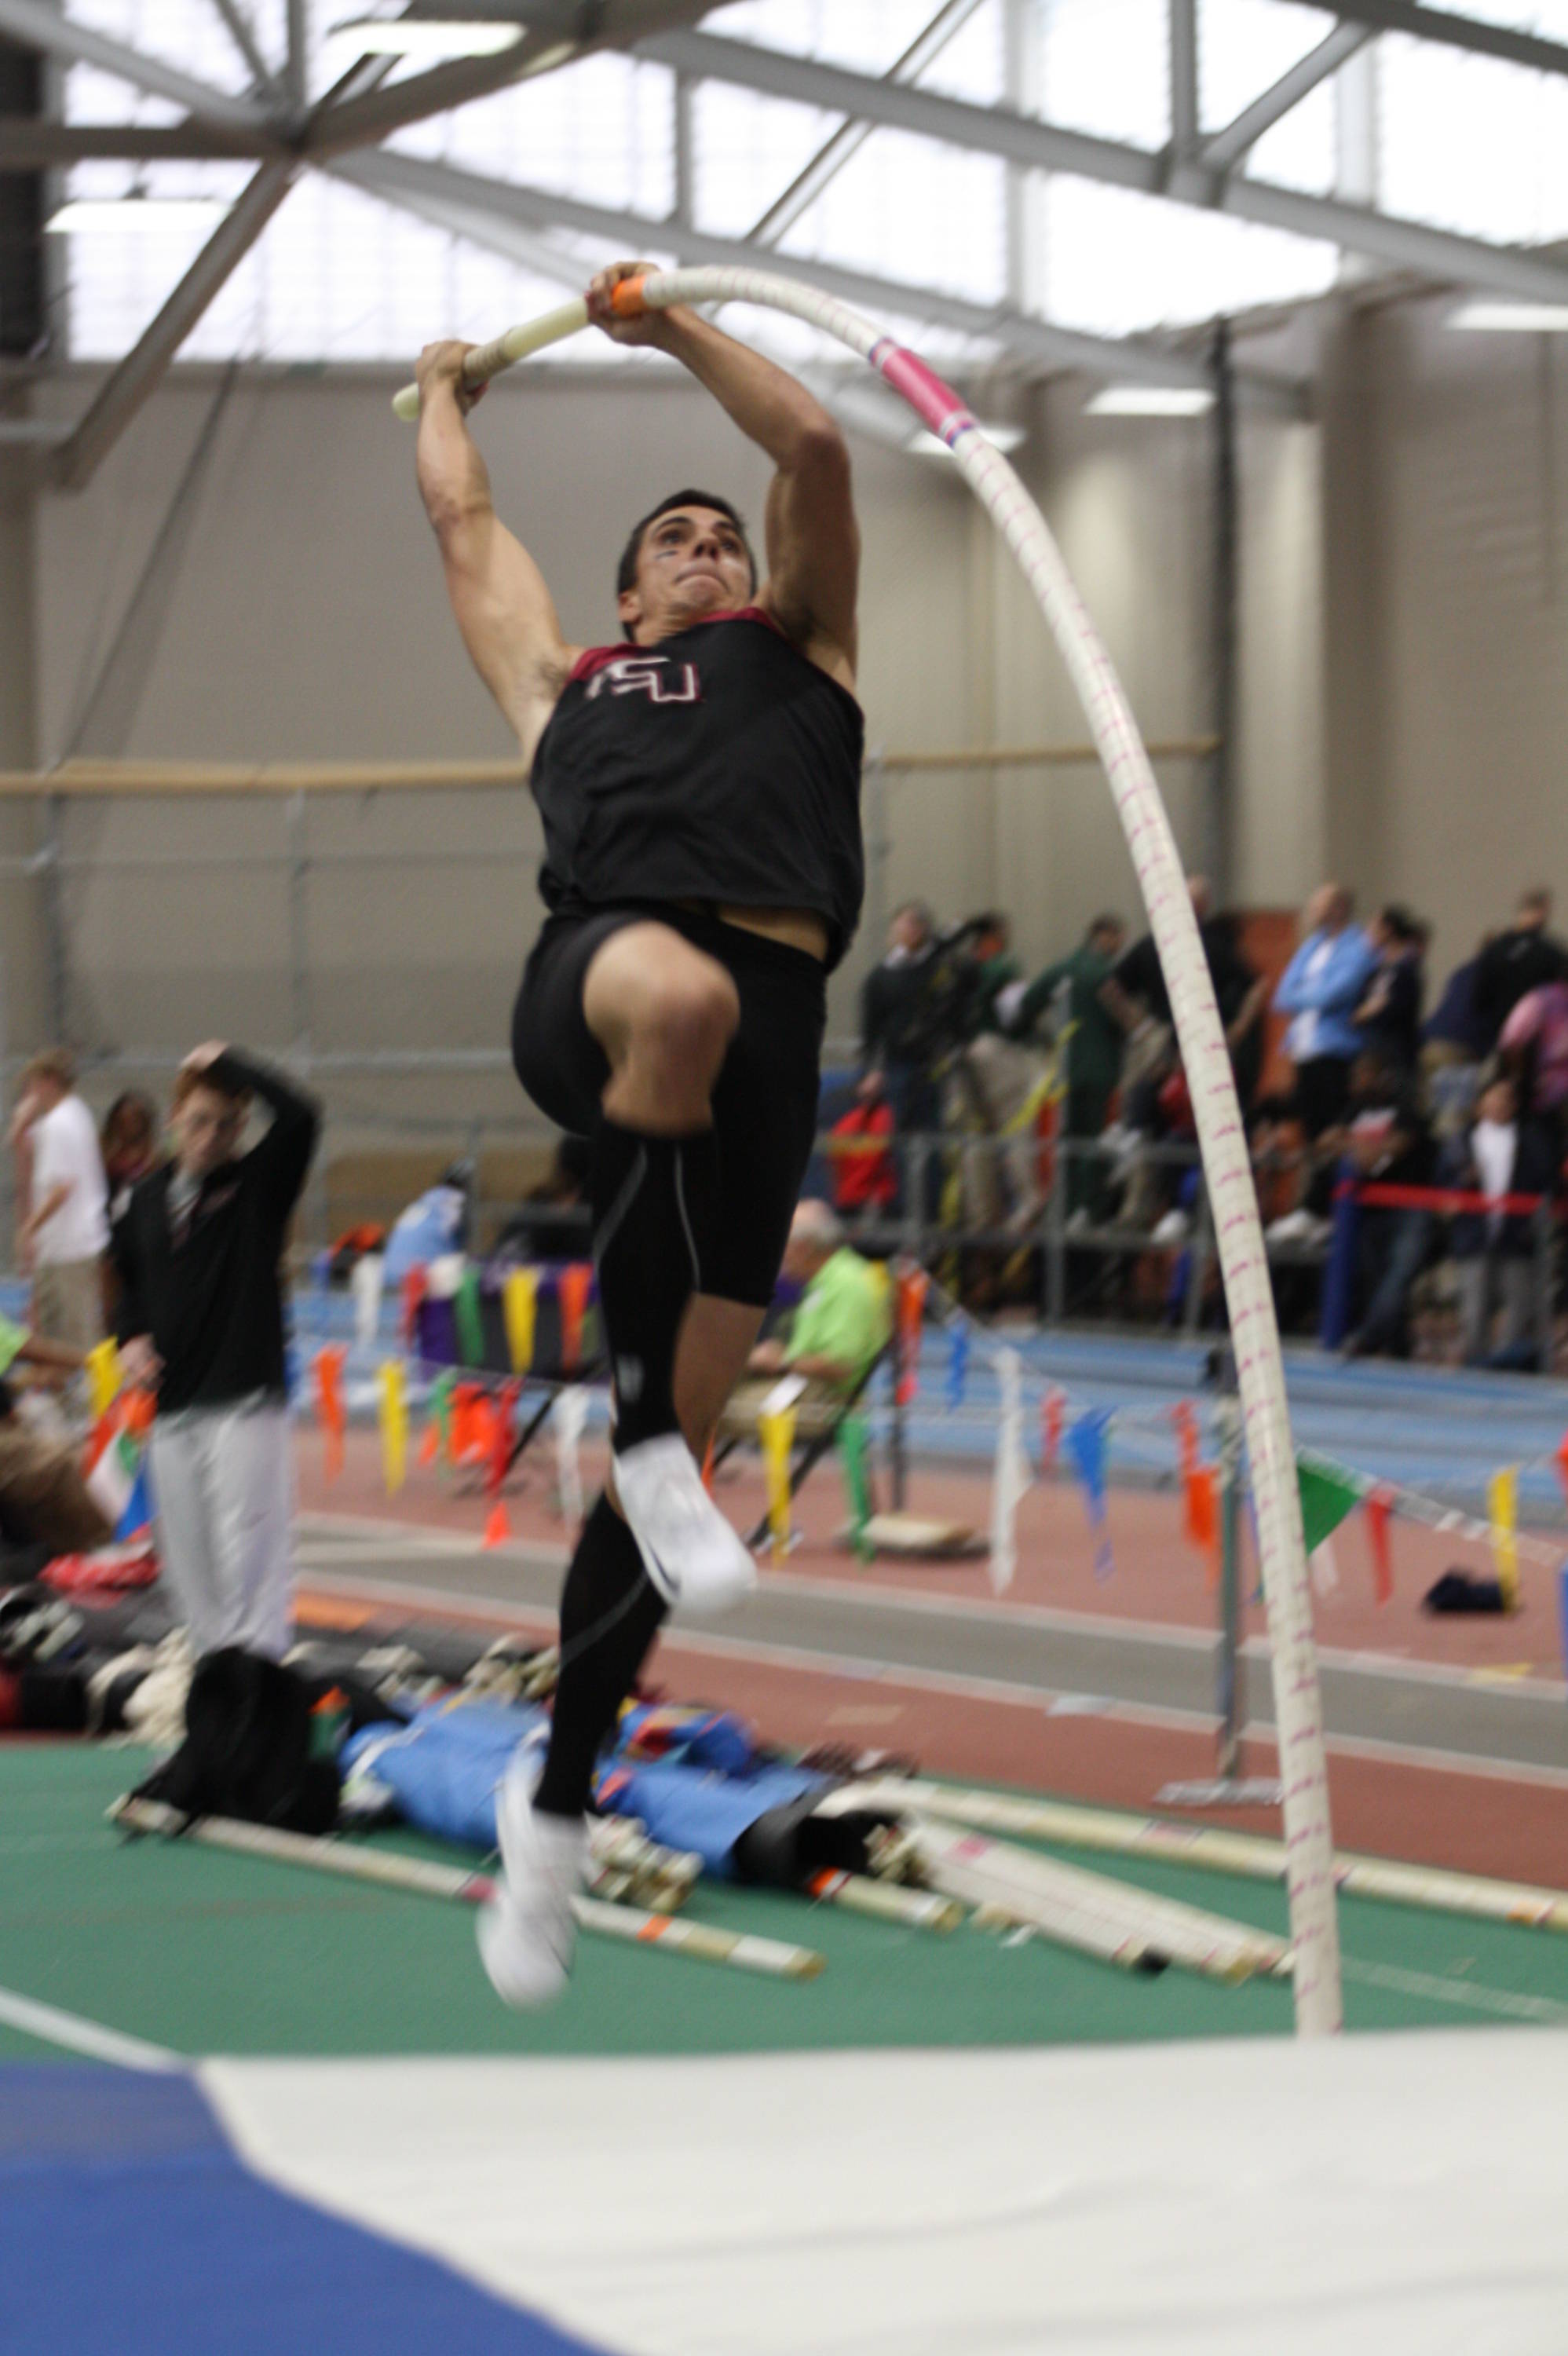 Gonzalo Barriolhet takes off on his way to a momentum-changing pole vault victory.